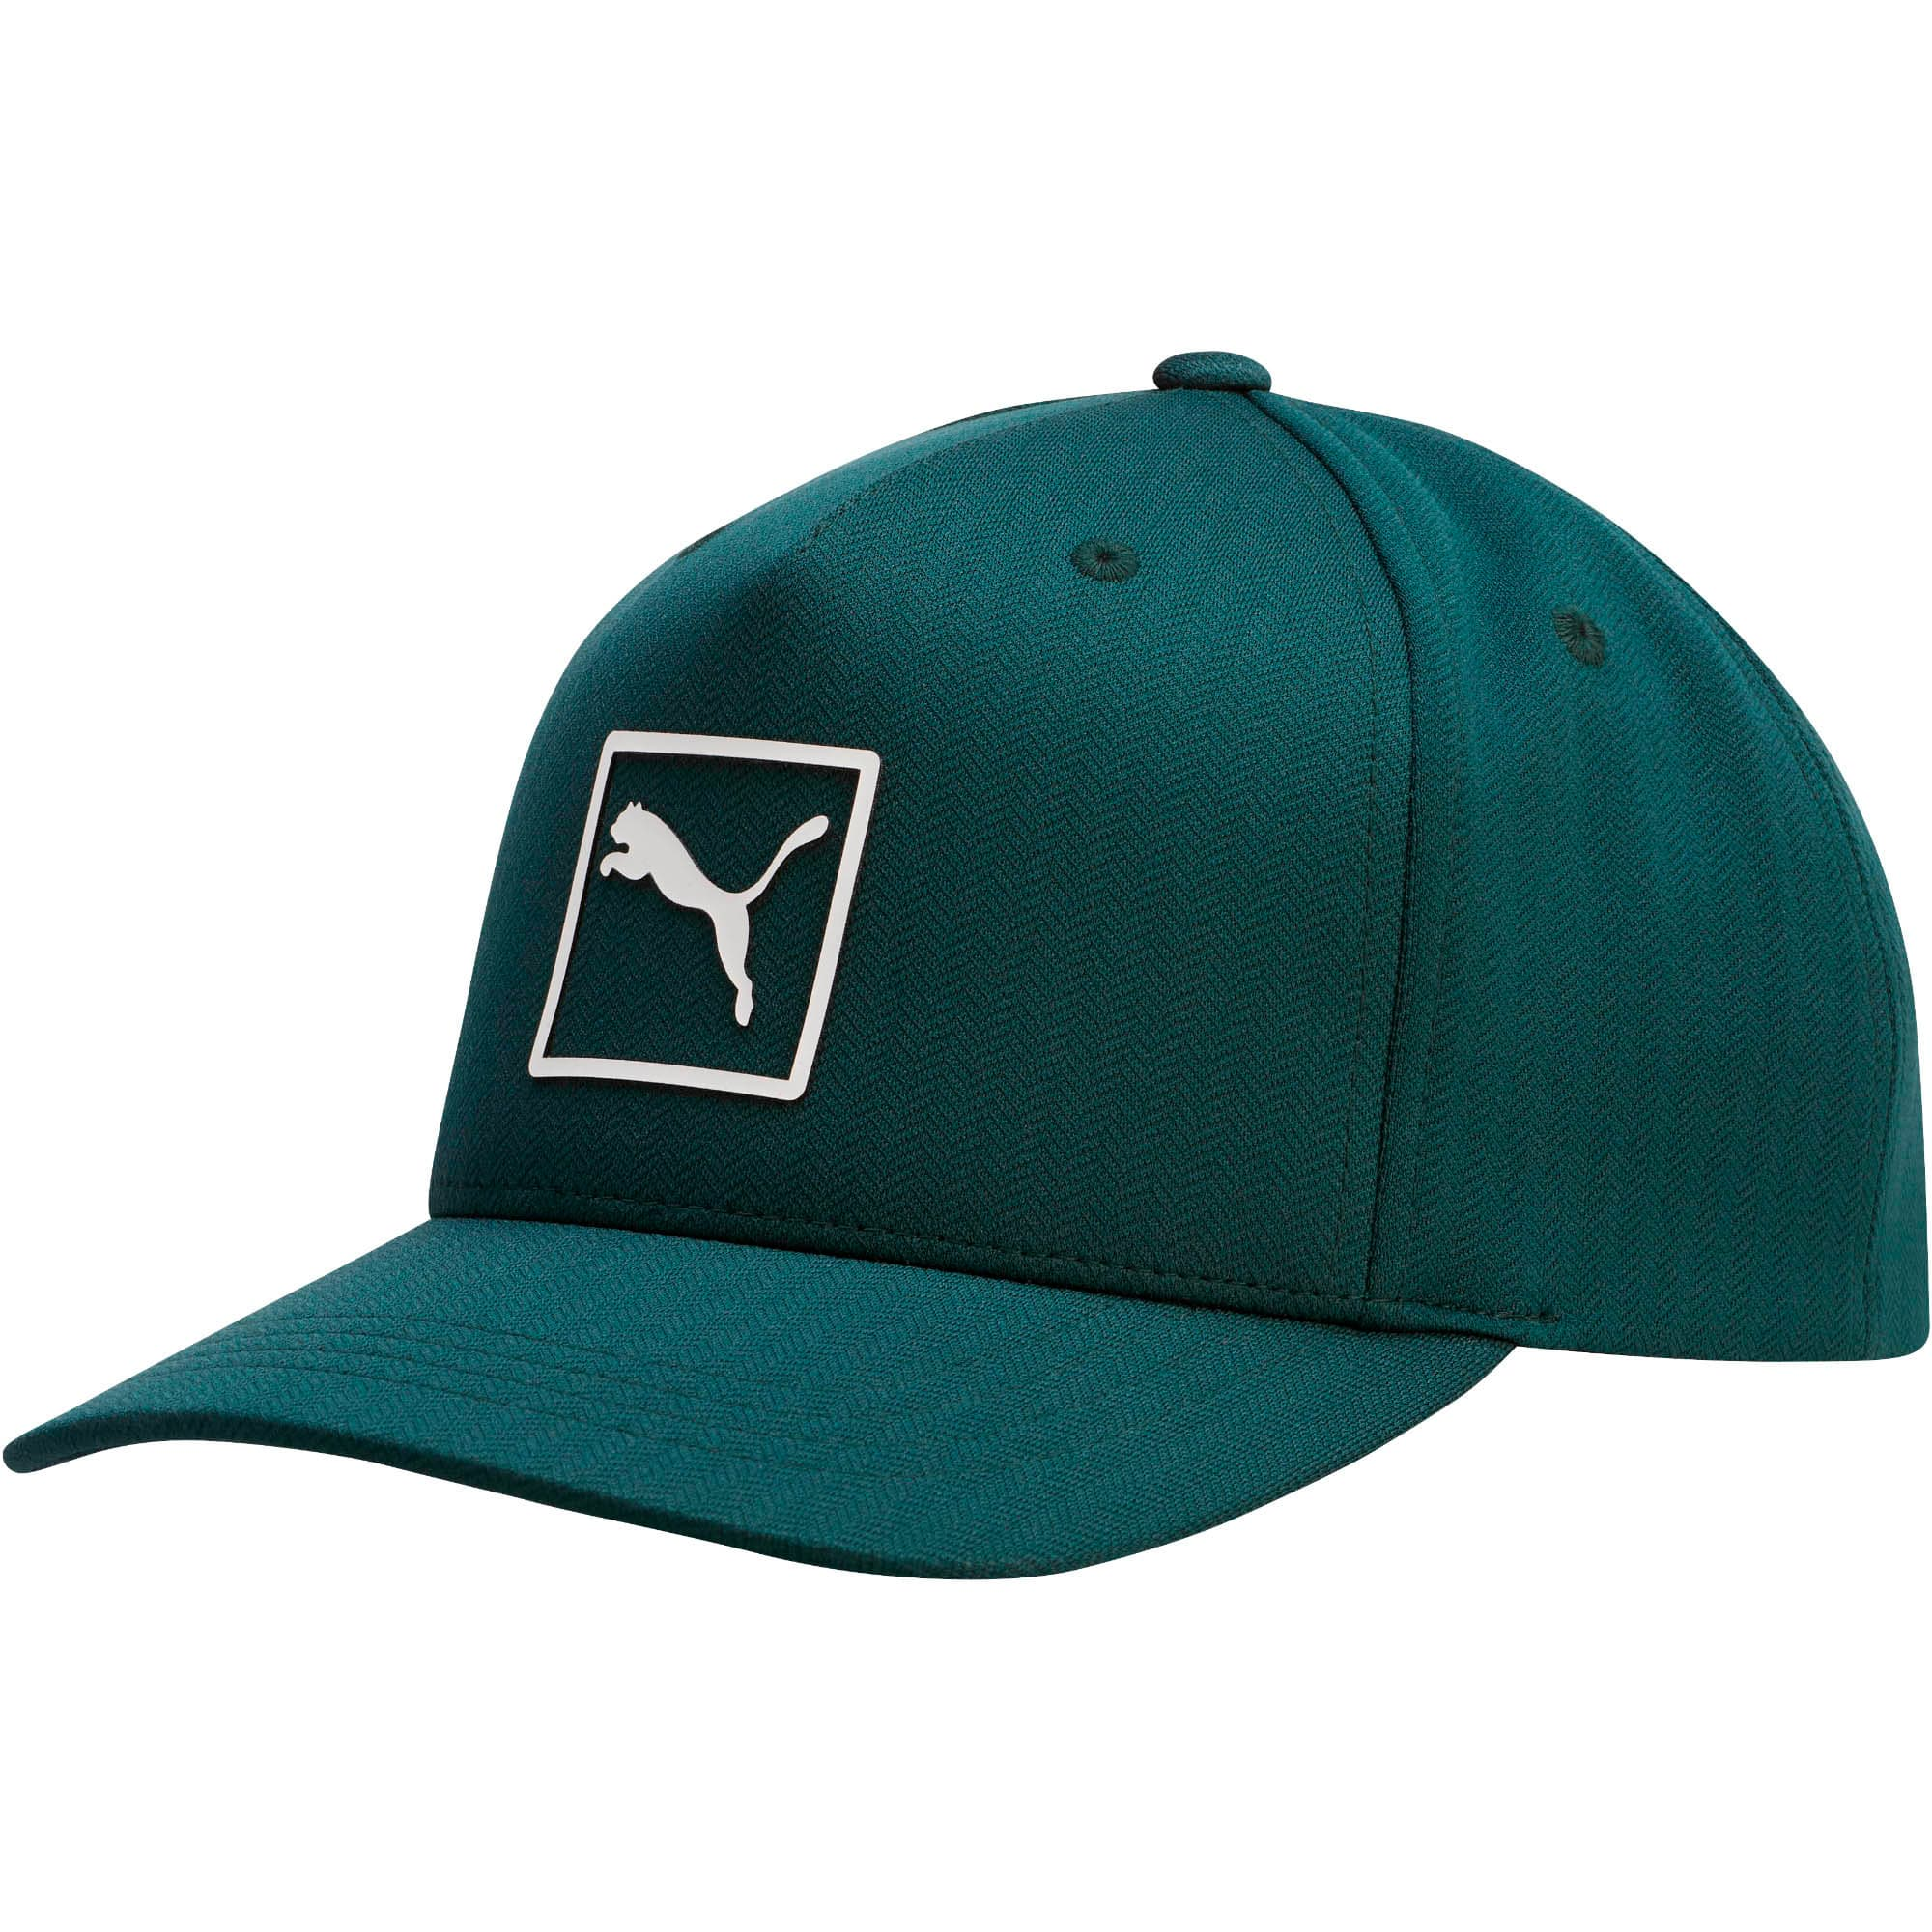 Thumbnail 1 of Chromatic Snapback, Dark Green, medium